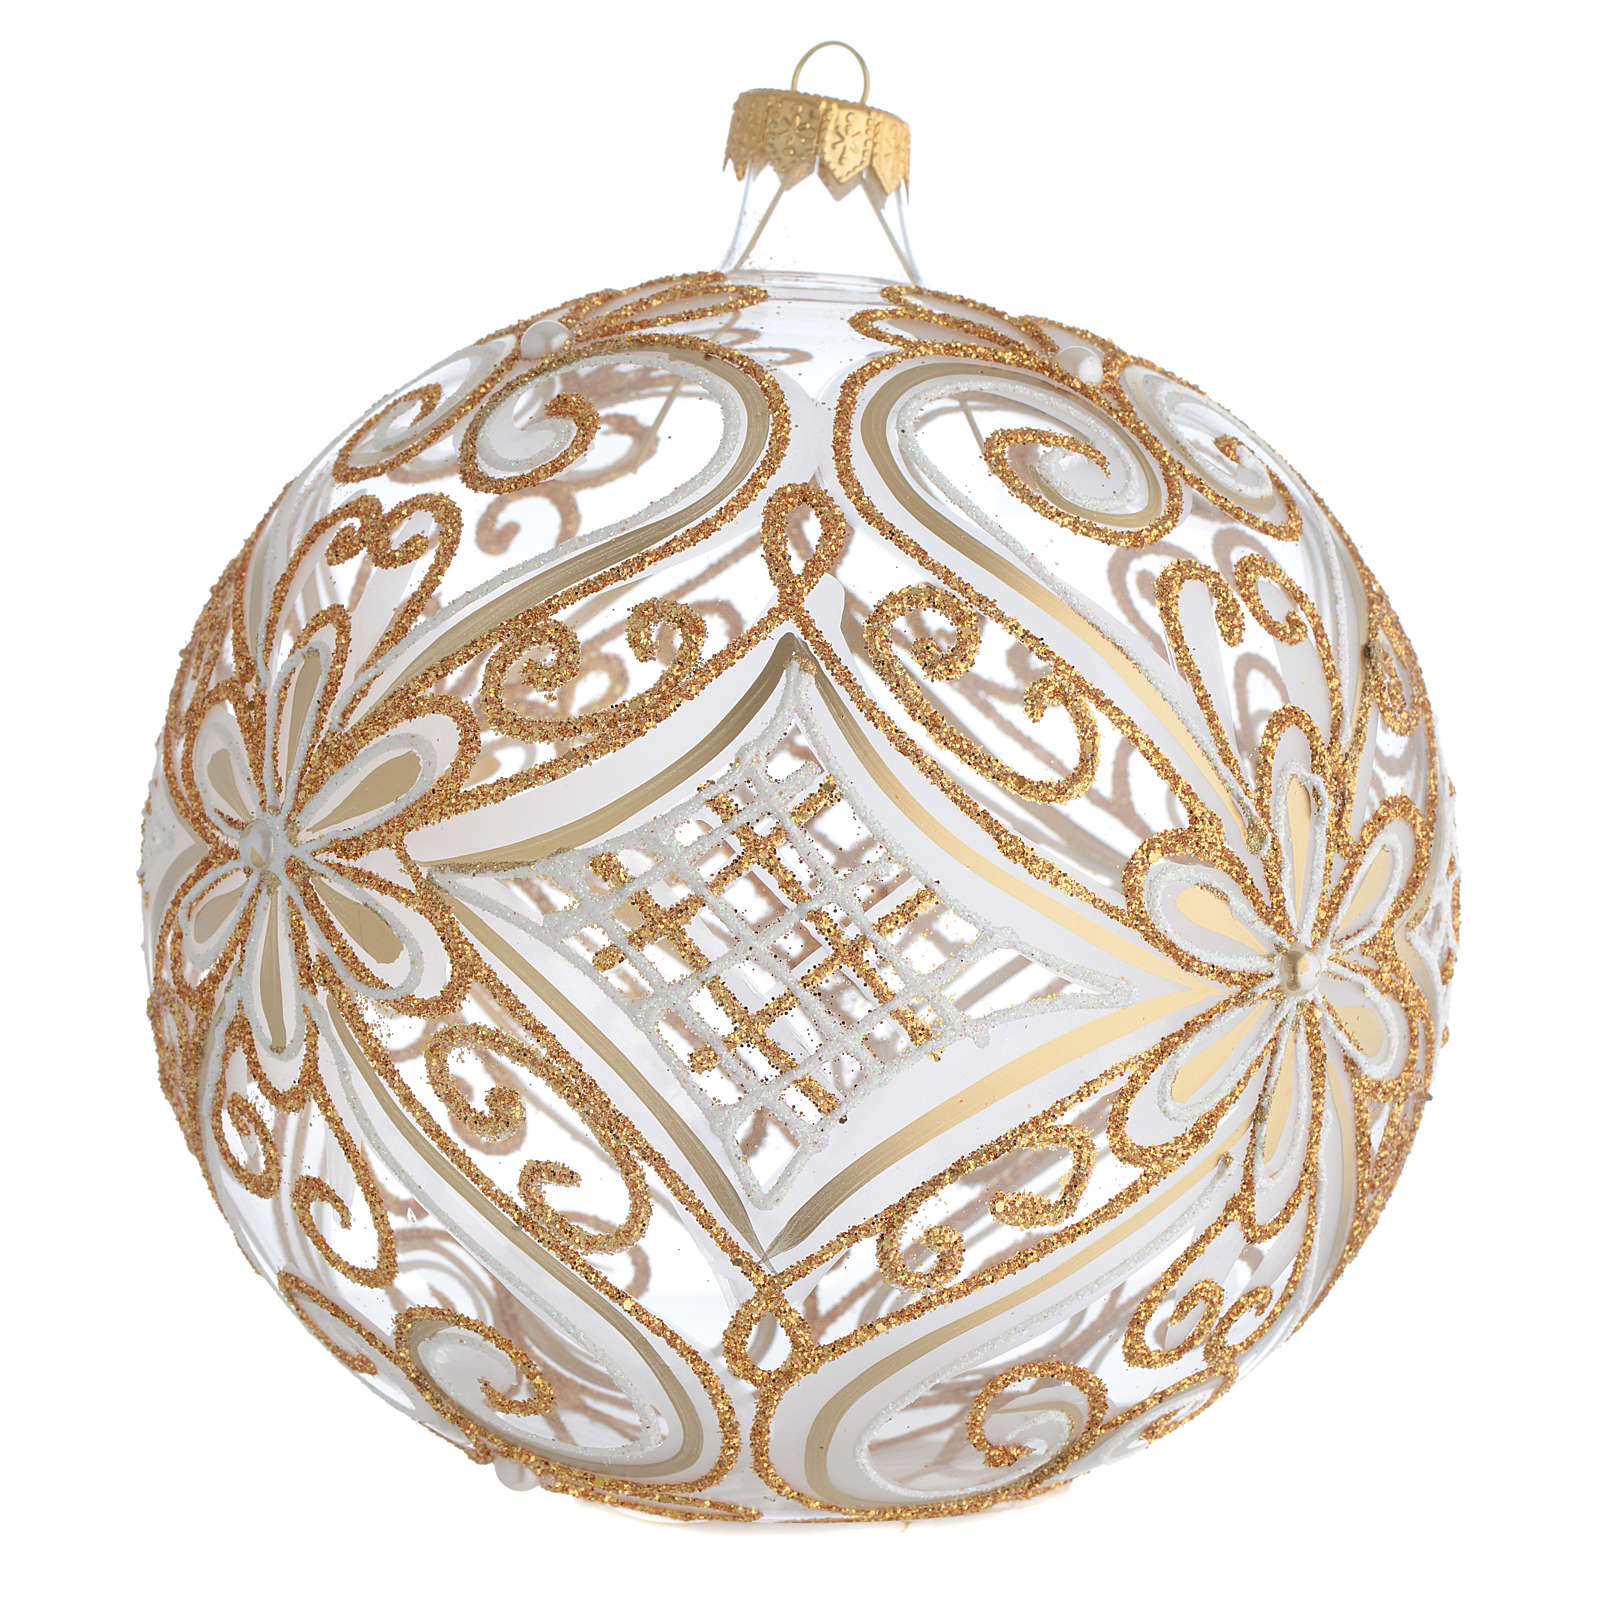 Christmas Bauble gold and white, transparent 15cm 4